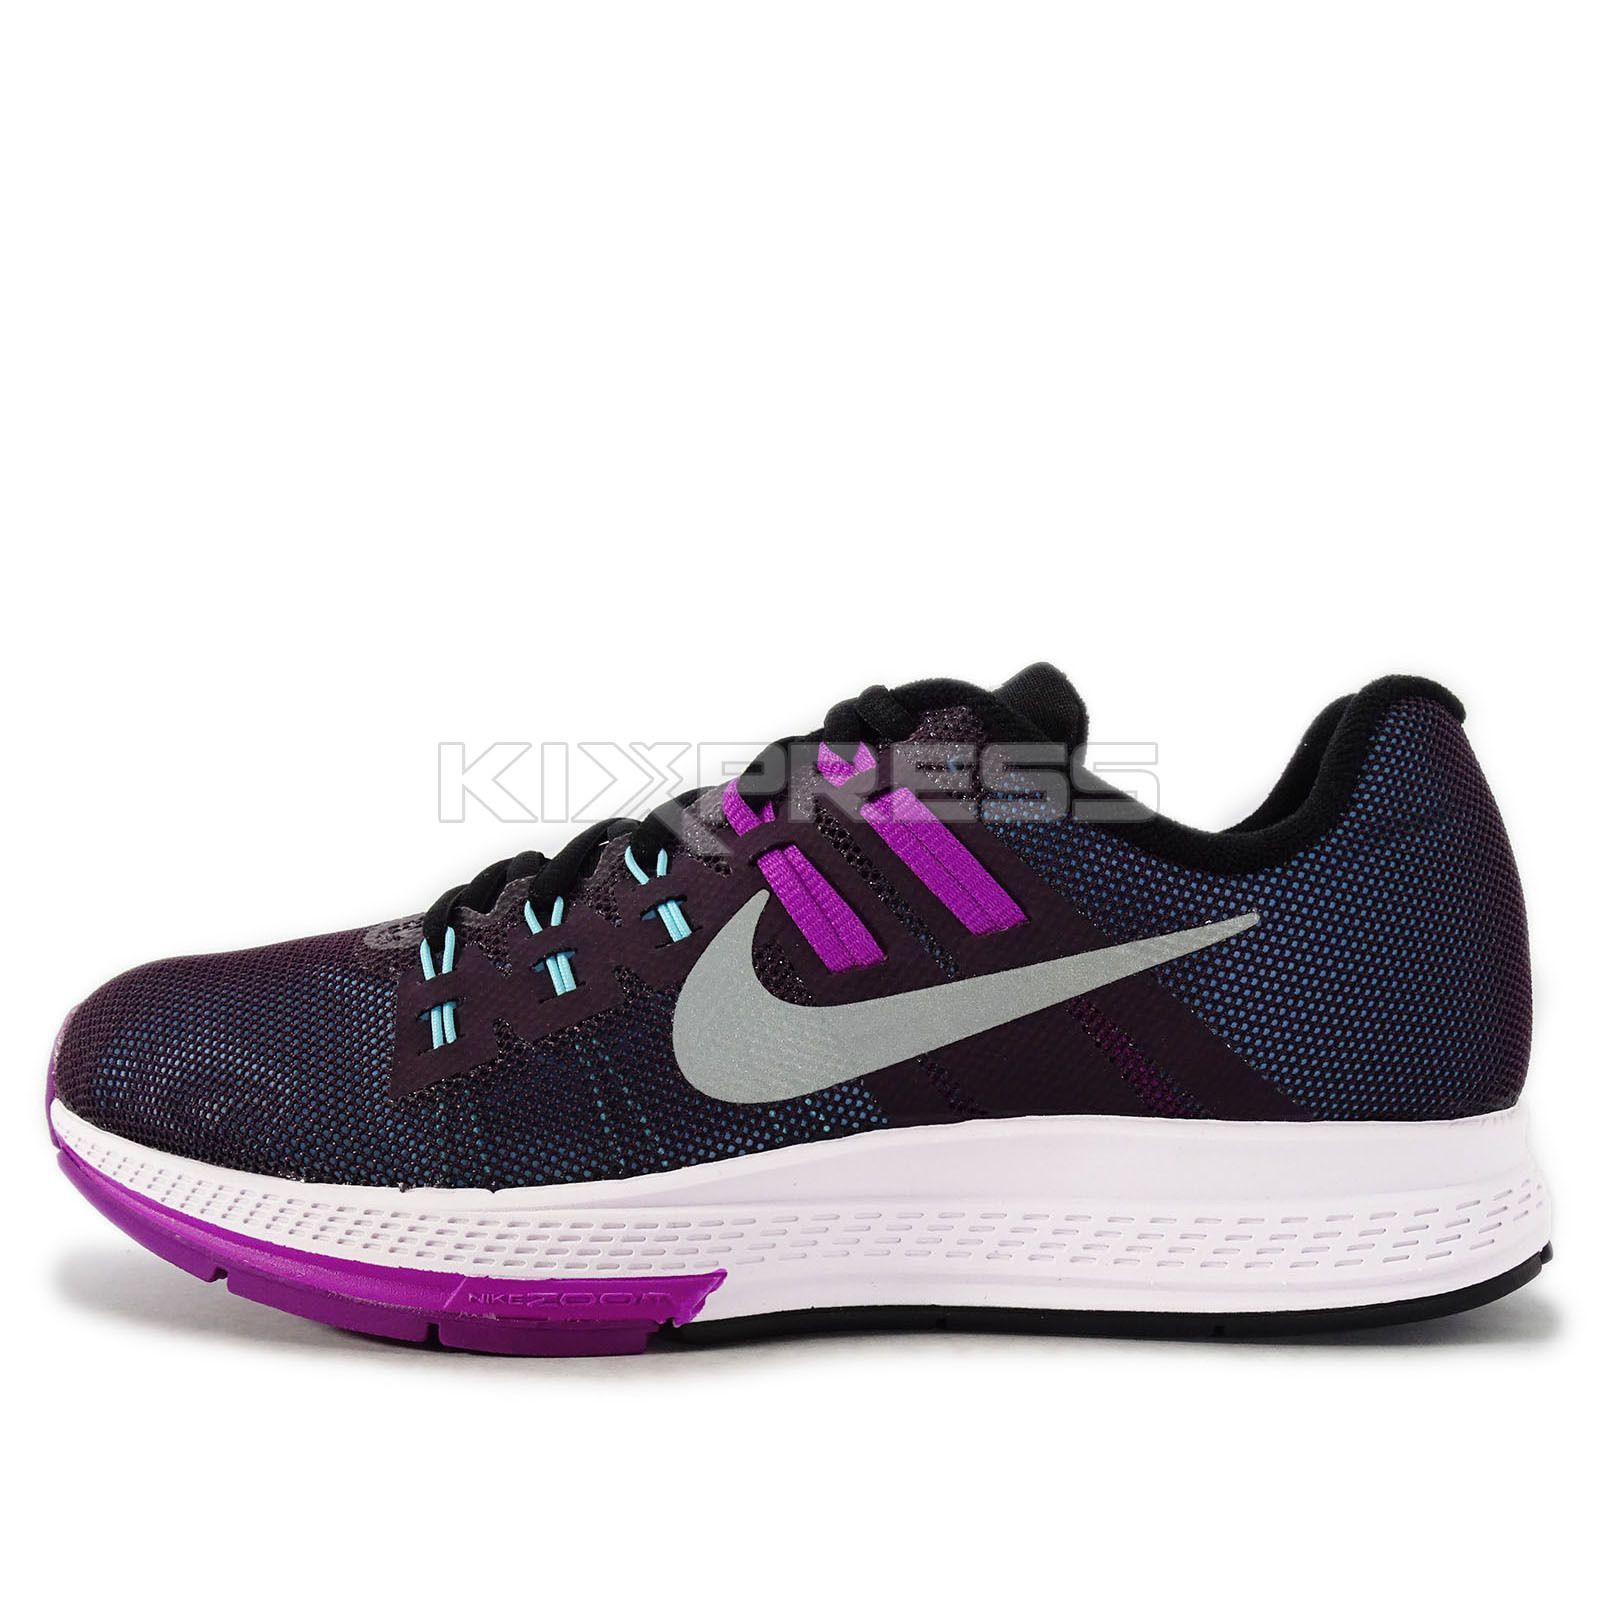 big sale 4db92 82b83 where to buy nike air zoom structure 19 ebay 30d1c 9a5a3